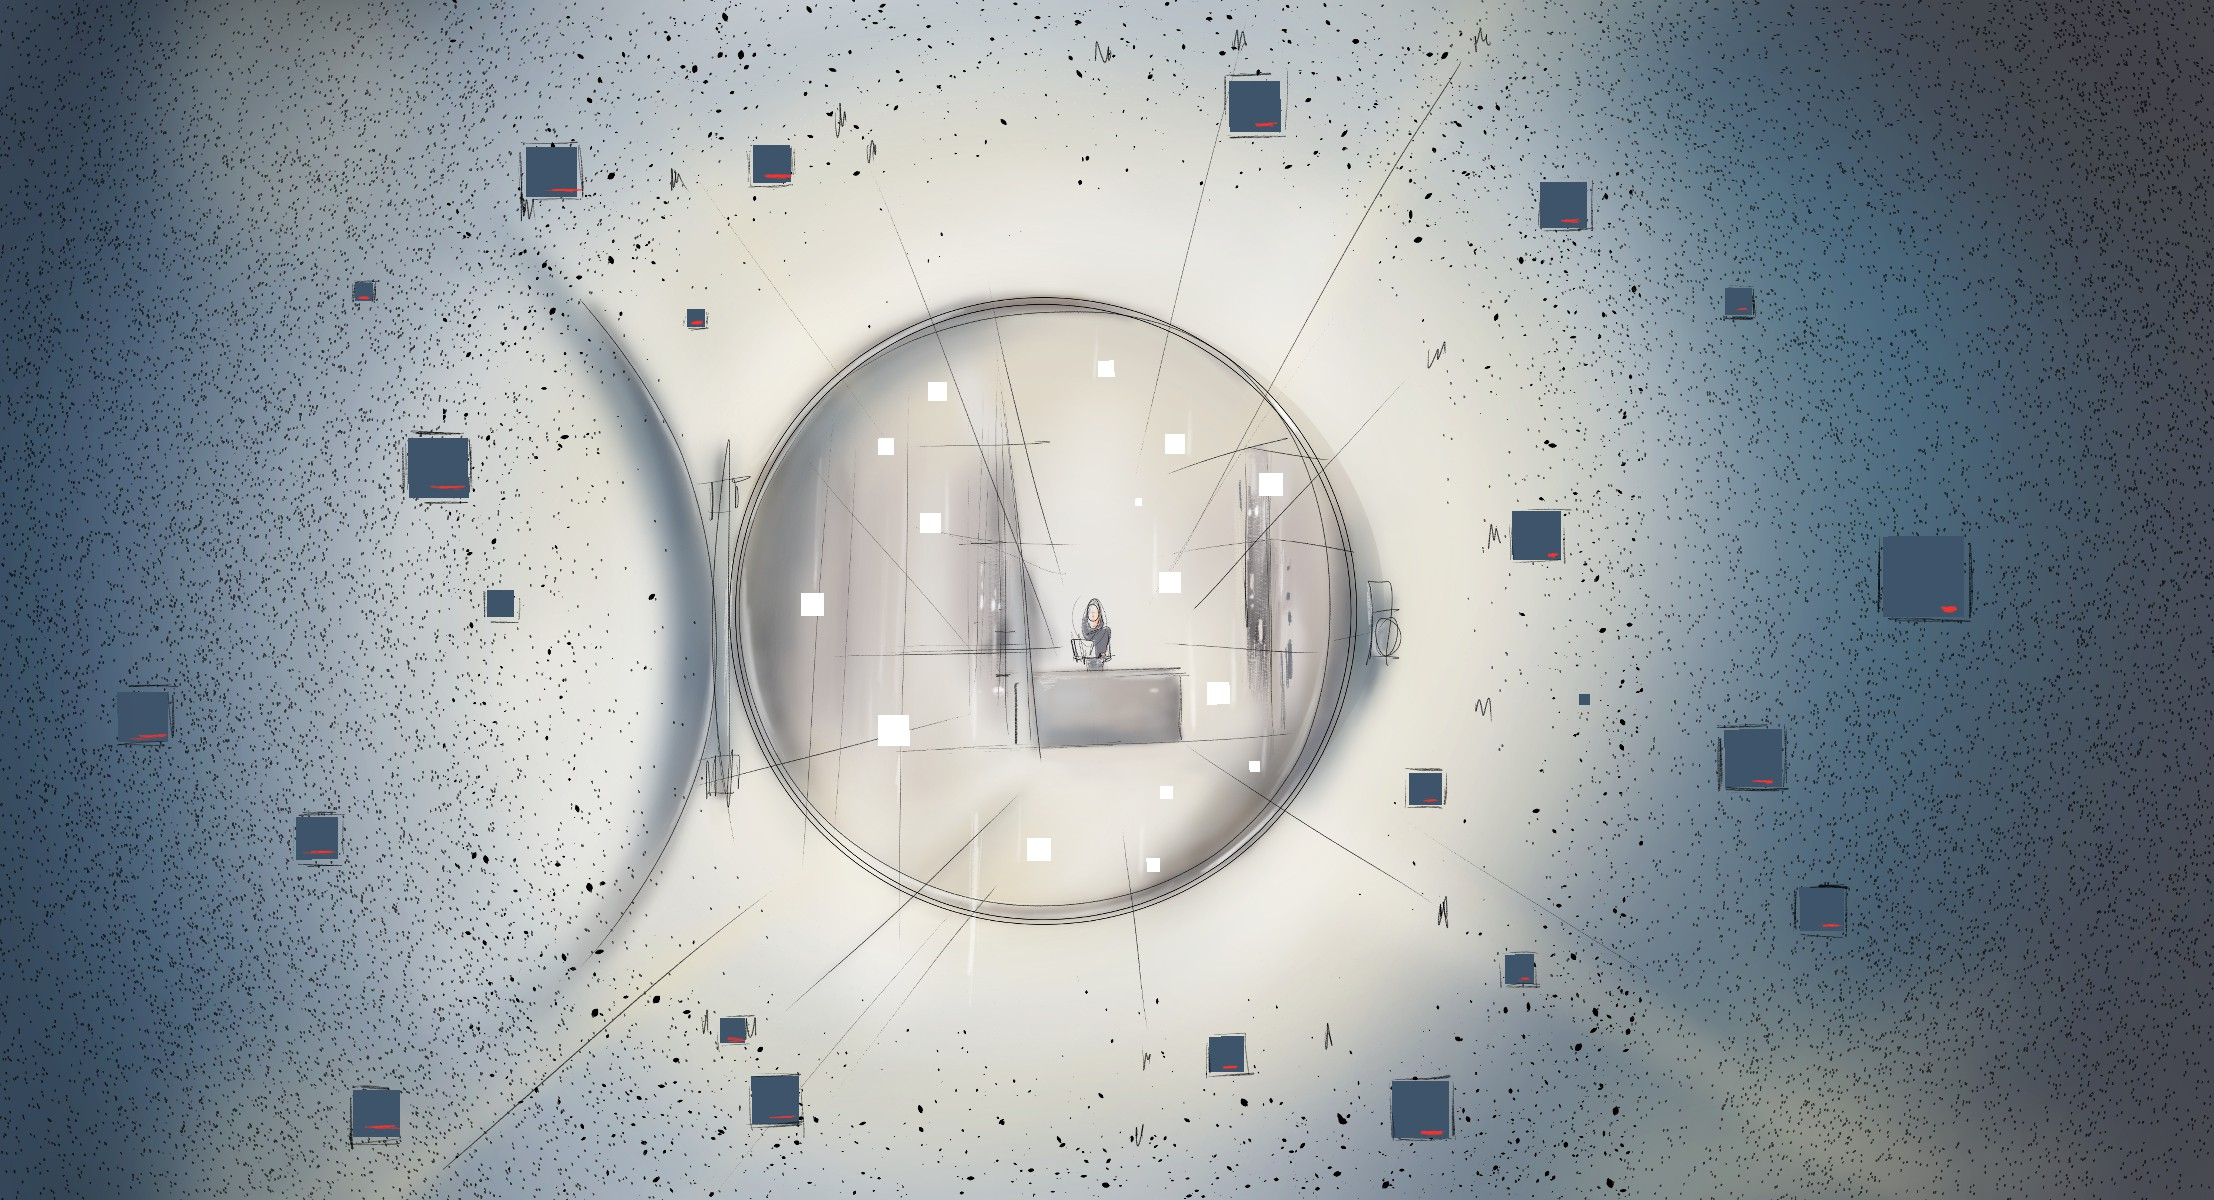 Design an awe inspiring , massive, fortified, virtual reality document vault.